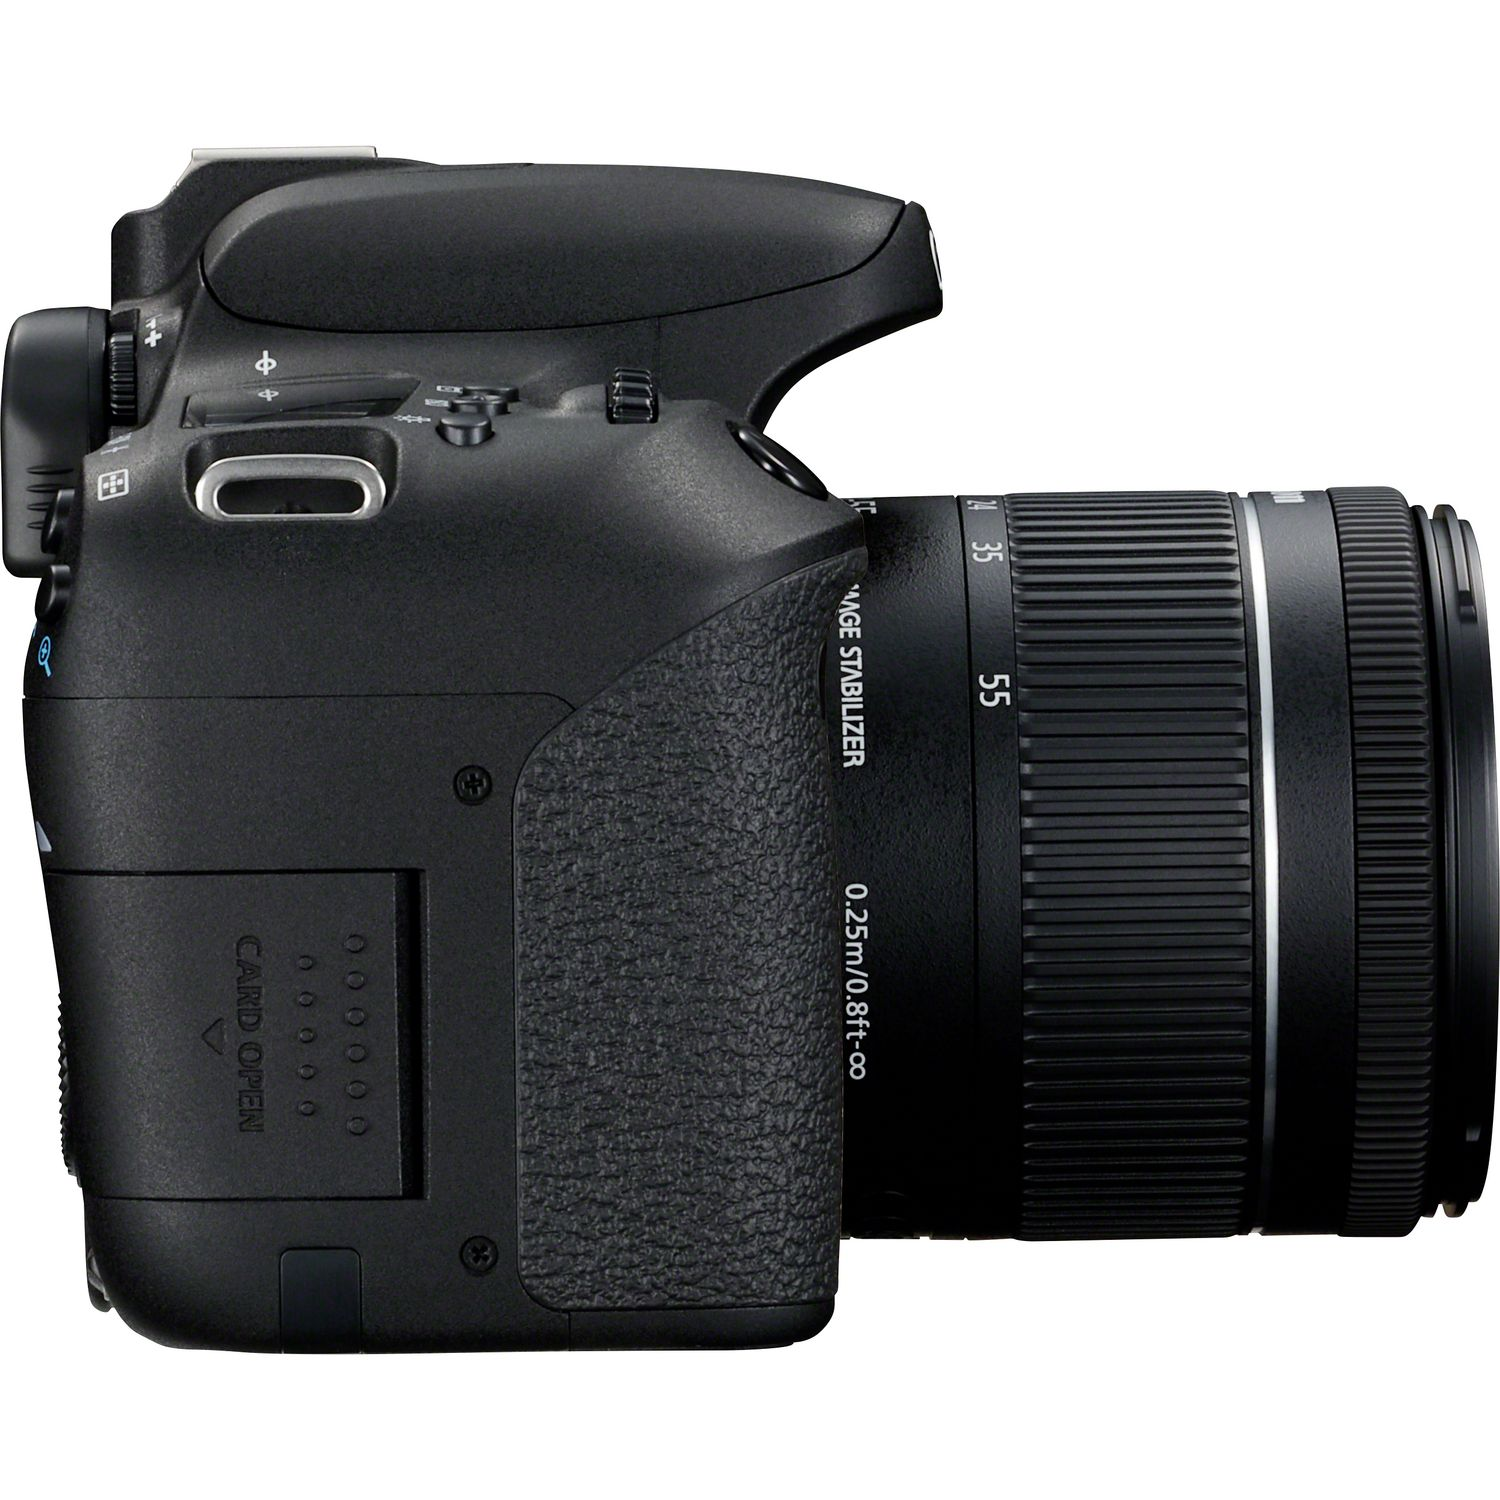 Buy Canon EOS 77D + 18-55 IS STM Lens in Wi-Fi Cameras